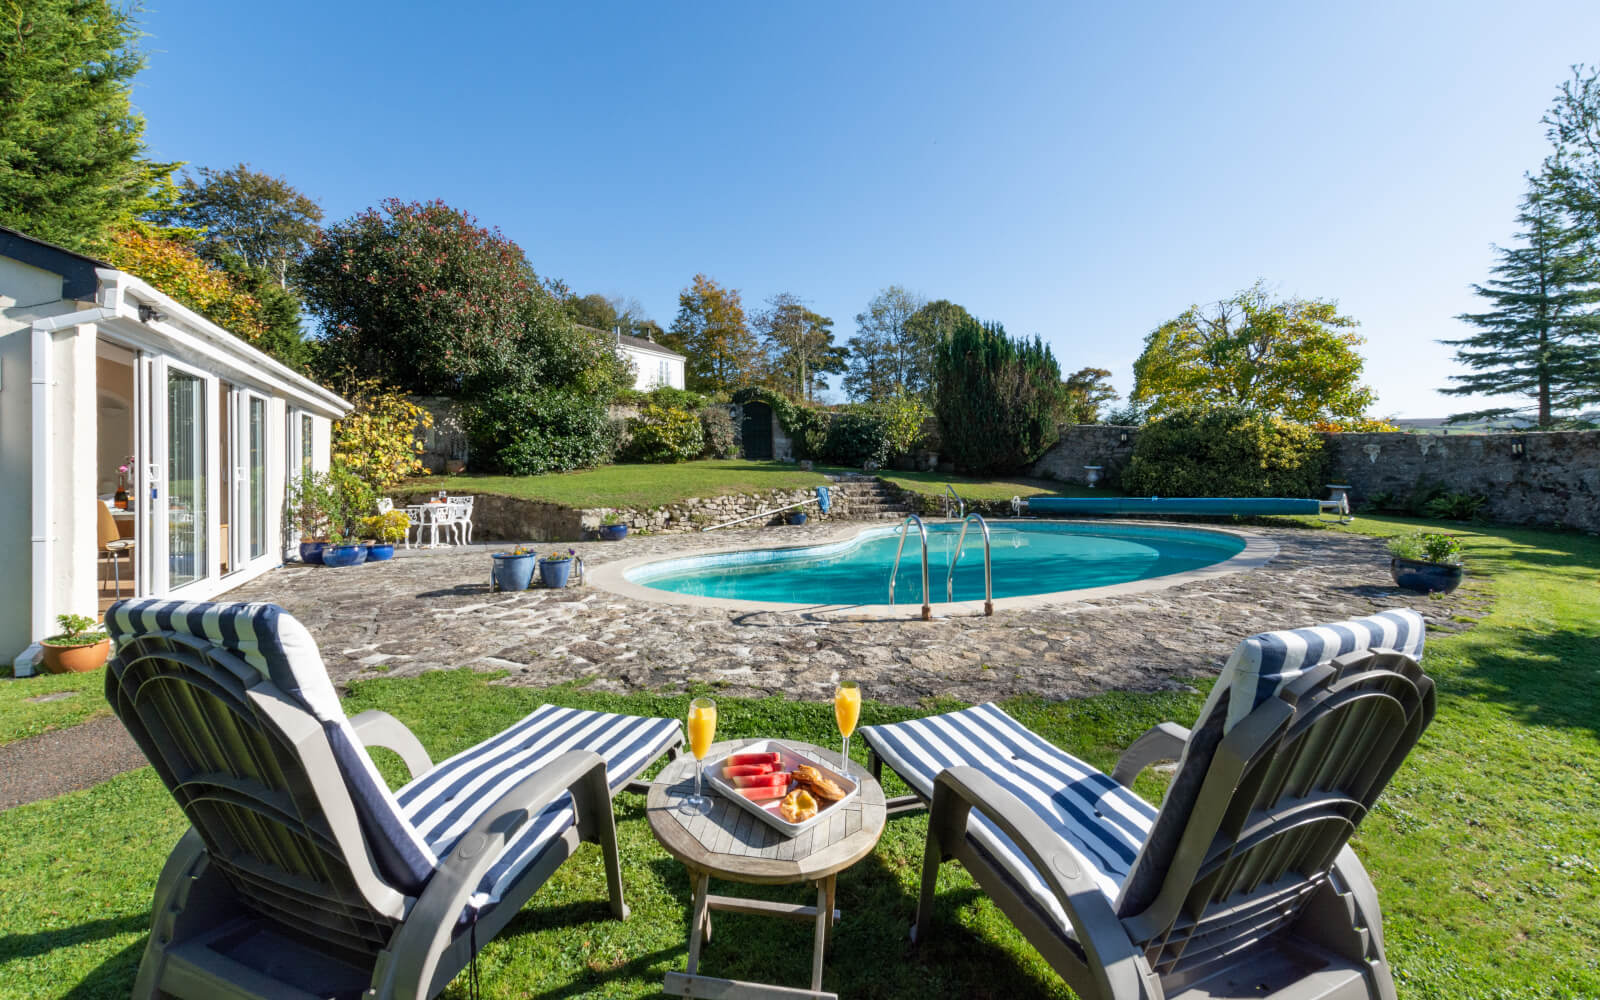 Holiday Cottages With Swimming Pools In St. Cleer To Rent - Save up to 60%